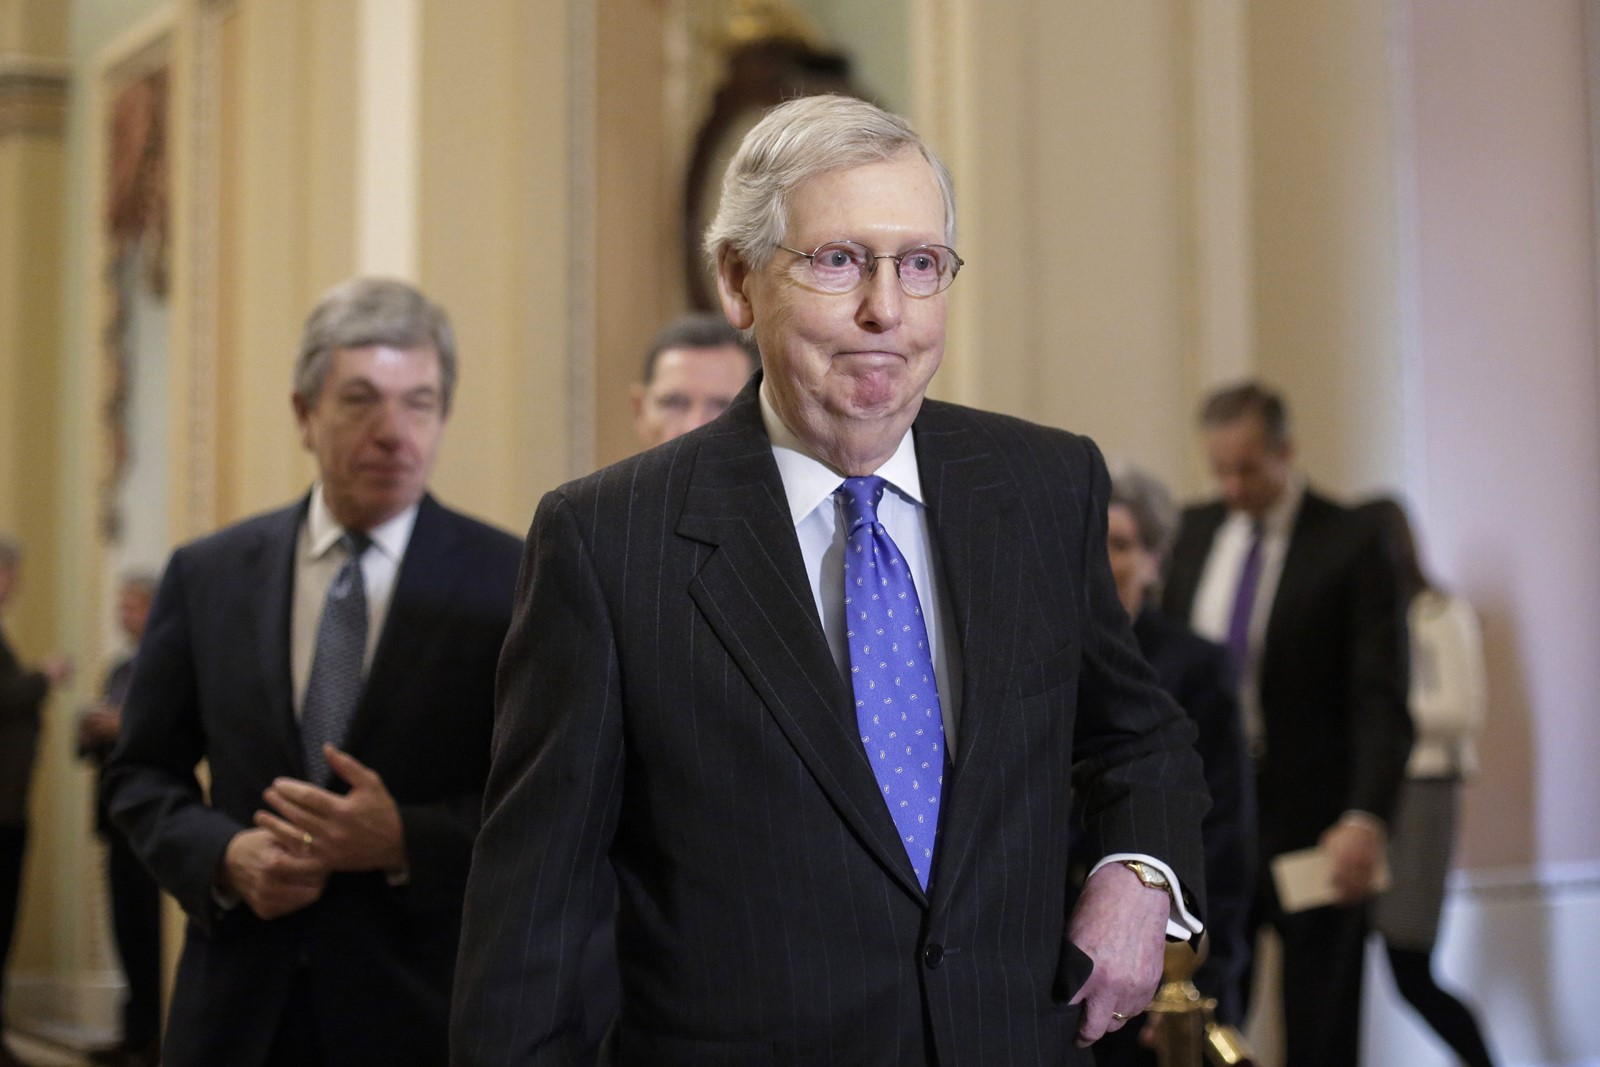 Senate Majority Leader Mitch McConnell has largely left the shutdown fight to President Donald J. Trump after the president in December rejected a funding bill that the White House had indicated Trump would sign. — Photograph: J. Scott Applewhite/Associated Press.